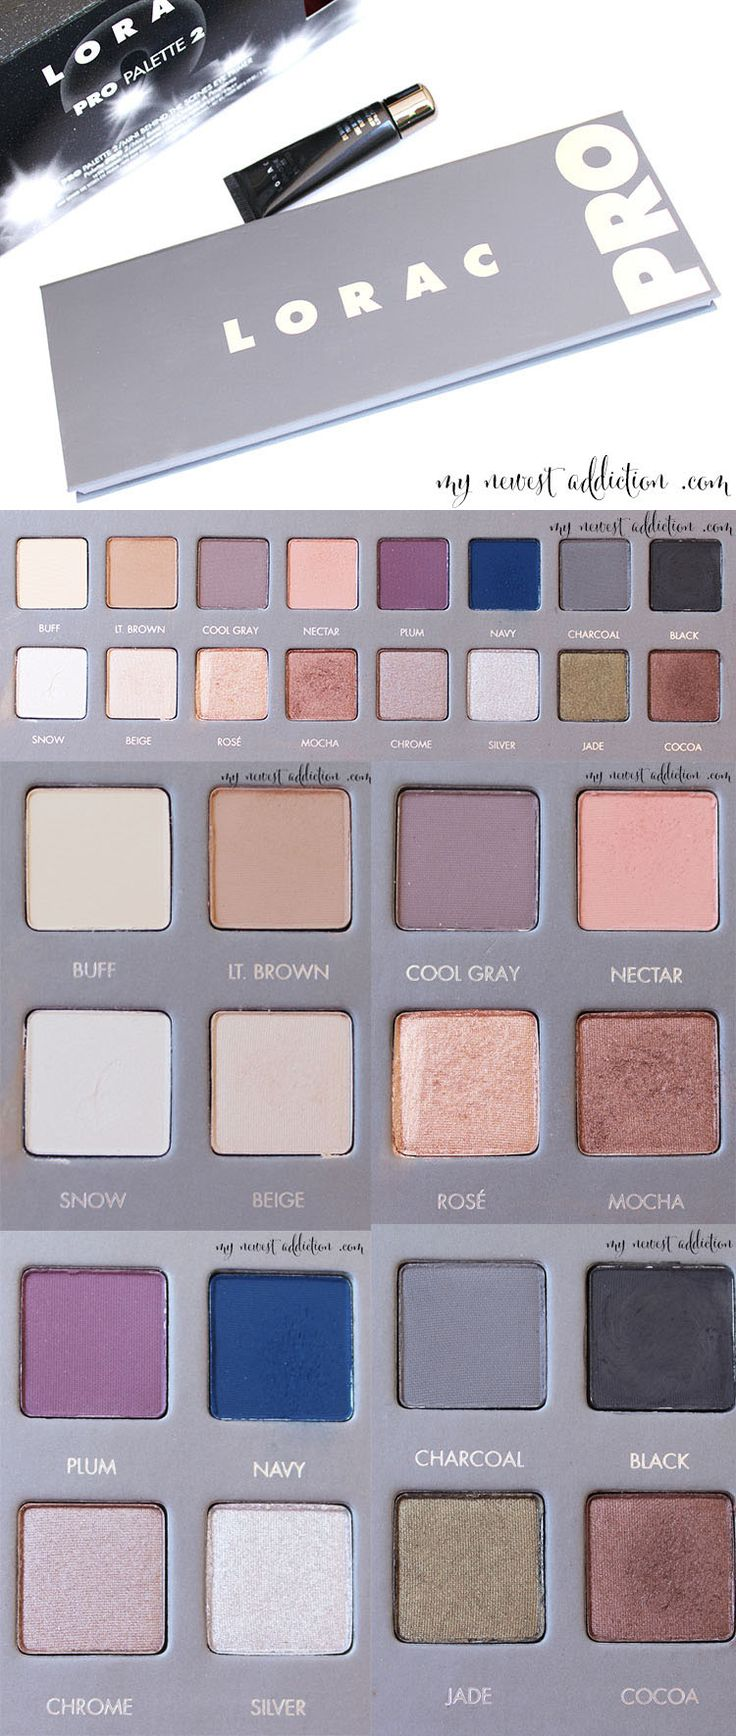 LORAC PRO Palette 2. A comprehensive look at the palette including shades, swatches and a review.